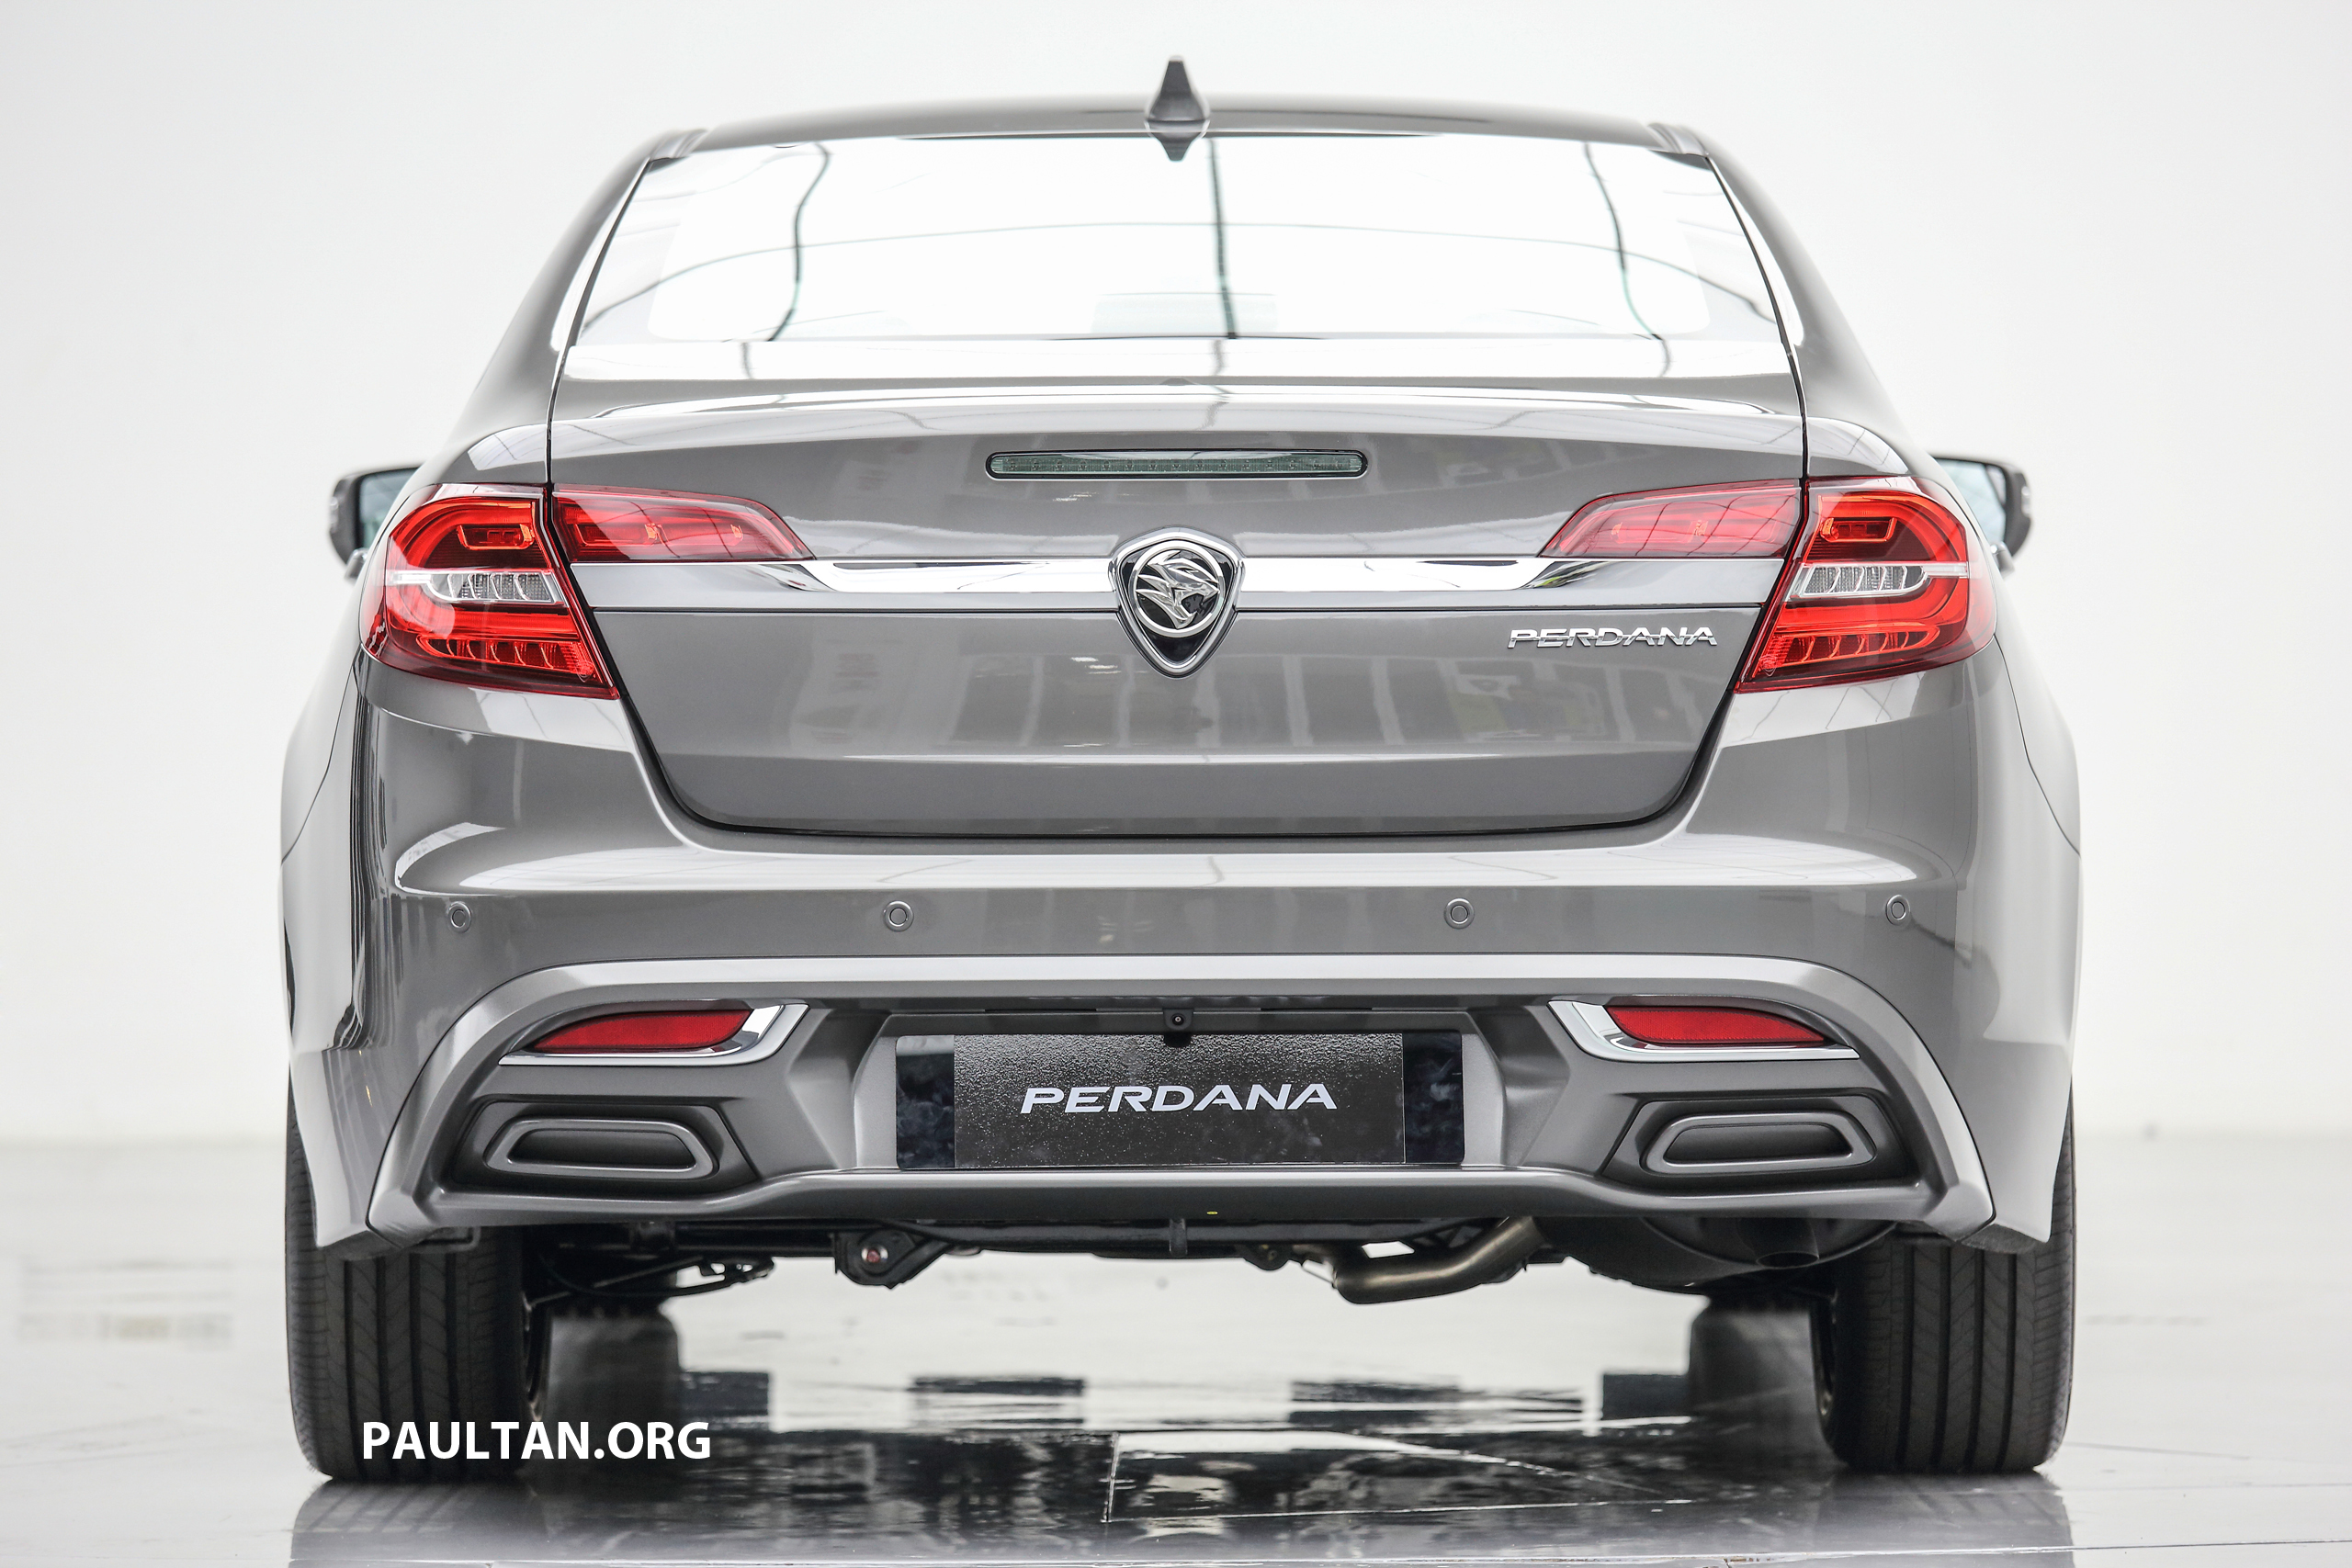 New Proton Perdana officially launched – 2.0L and 2.4L Honda engines